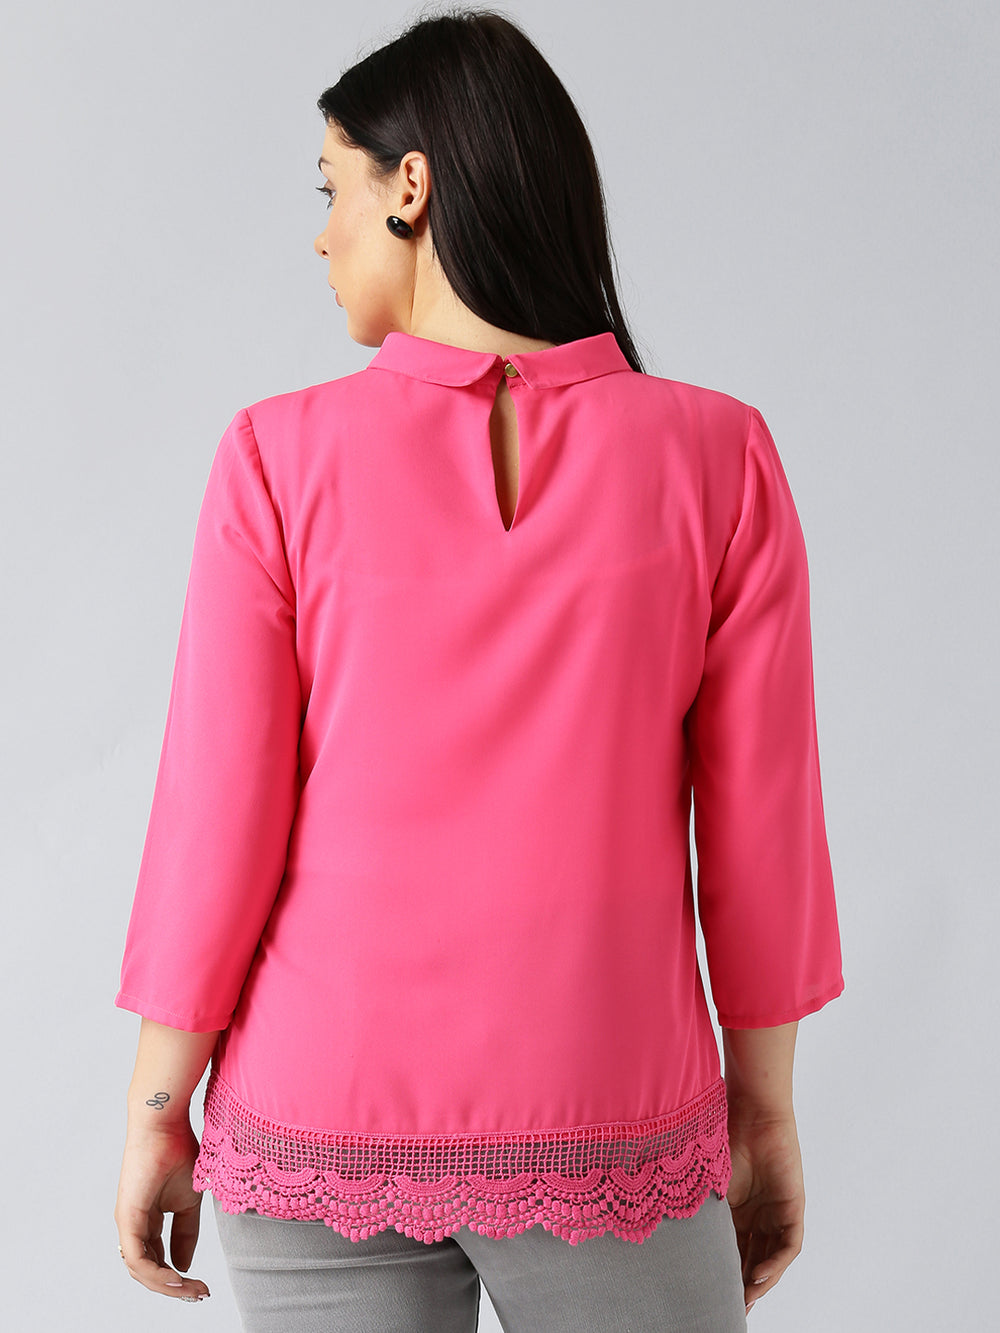 Besiva Women Pink Solid A-Line Top